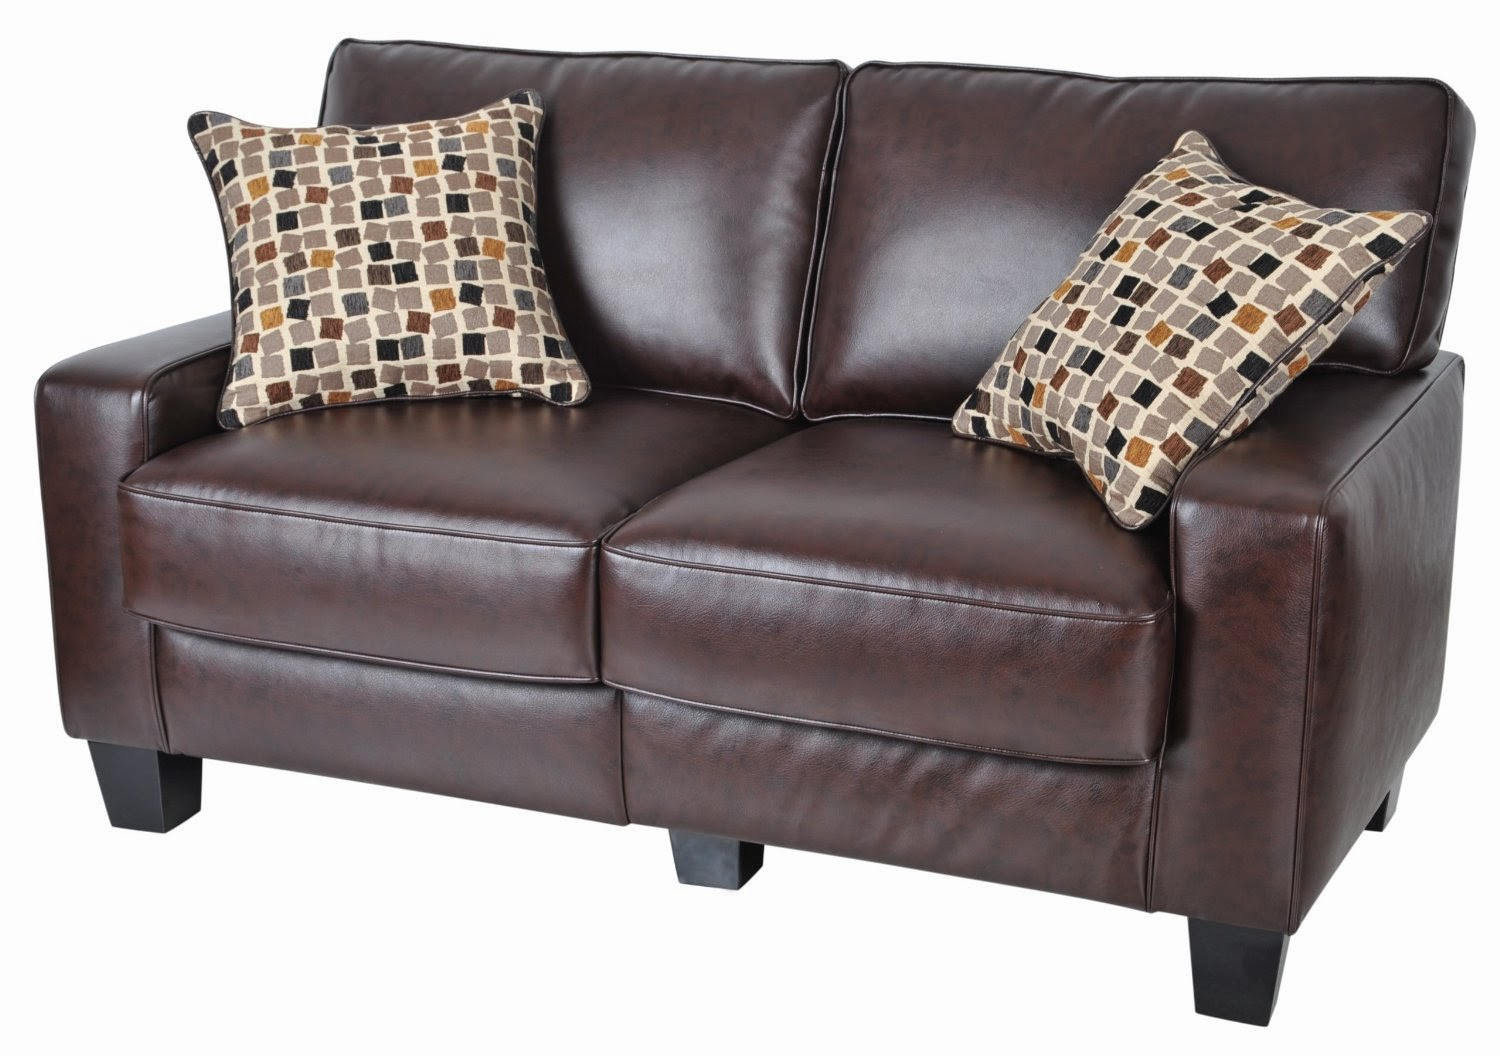 Serta Bonded Leather Convertible Sofa Tempurpedic Beds Brown Couch And Loveseat